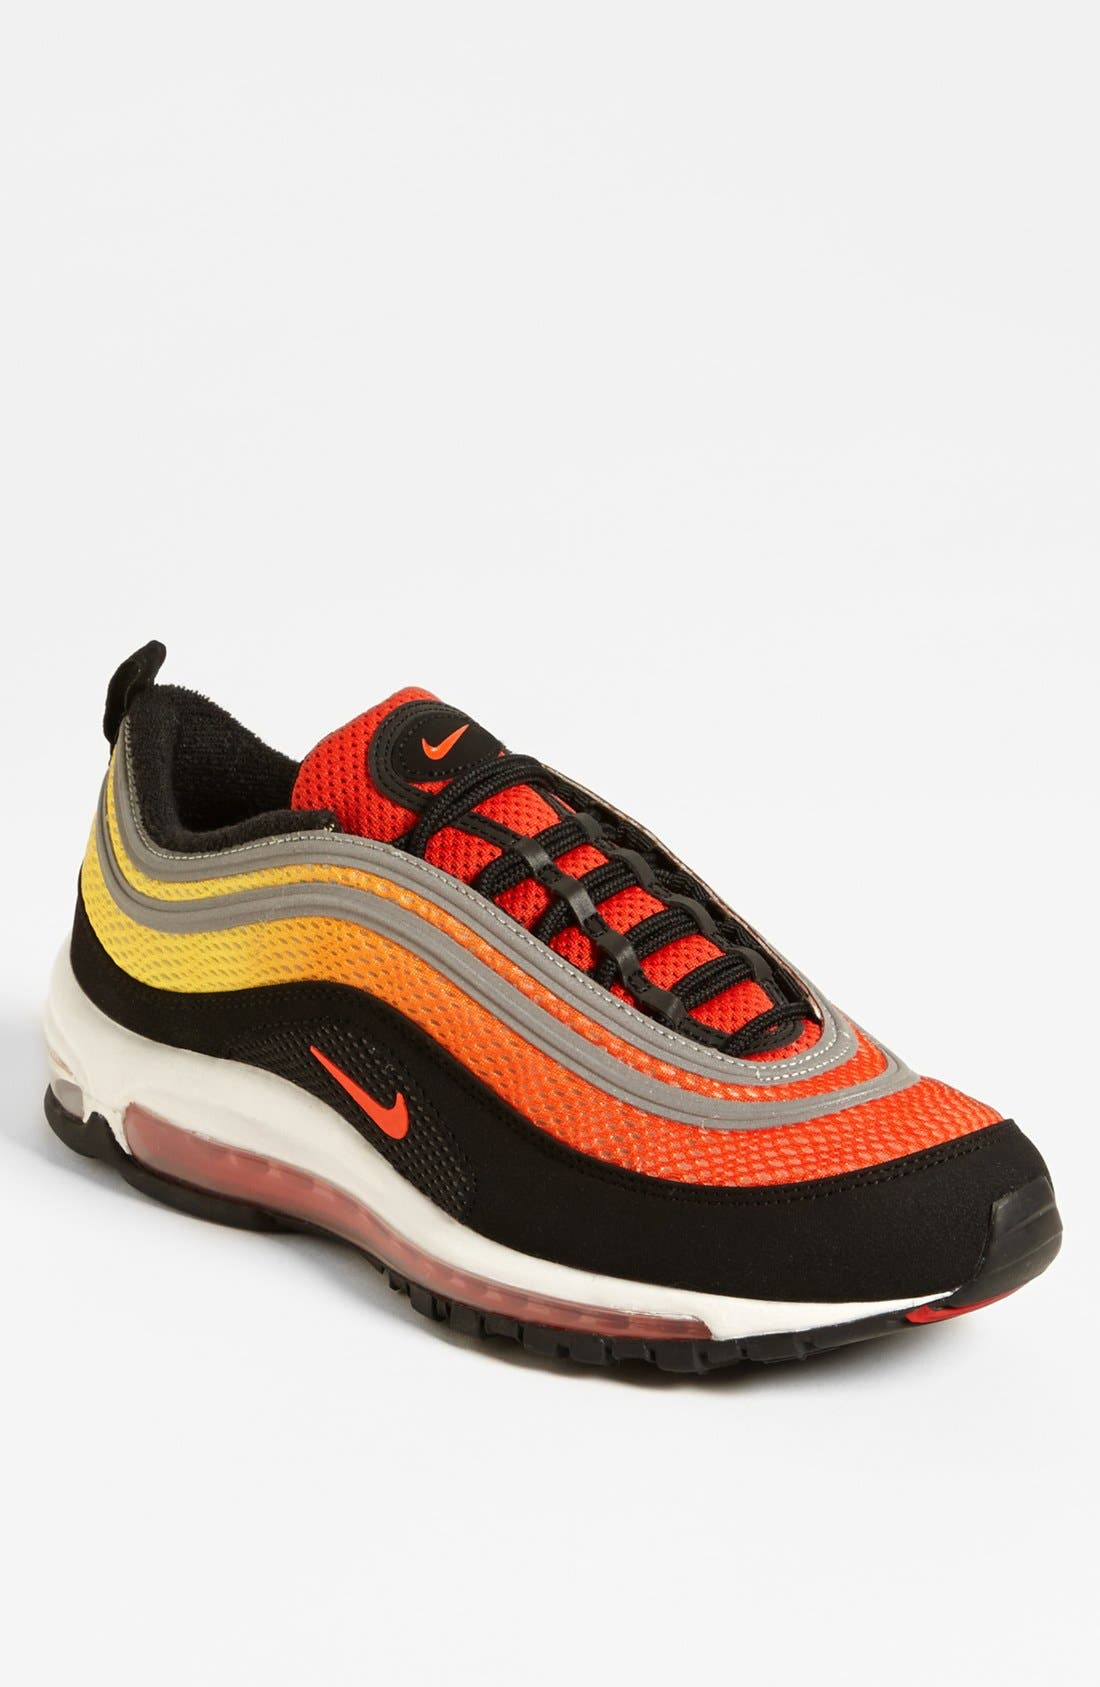 Alternate Image 1 Selected - Nike 'Air Max 97 Premium' Sneaker (Men)